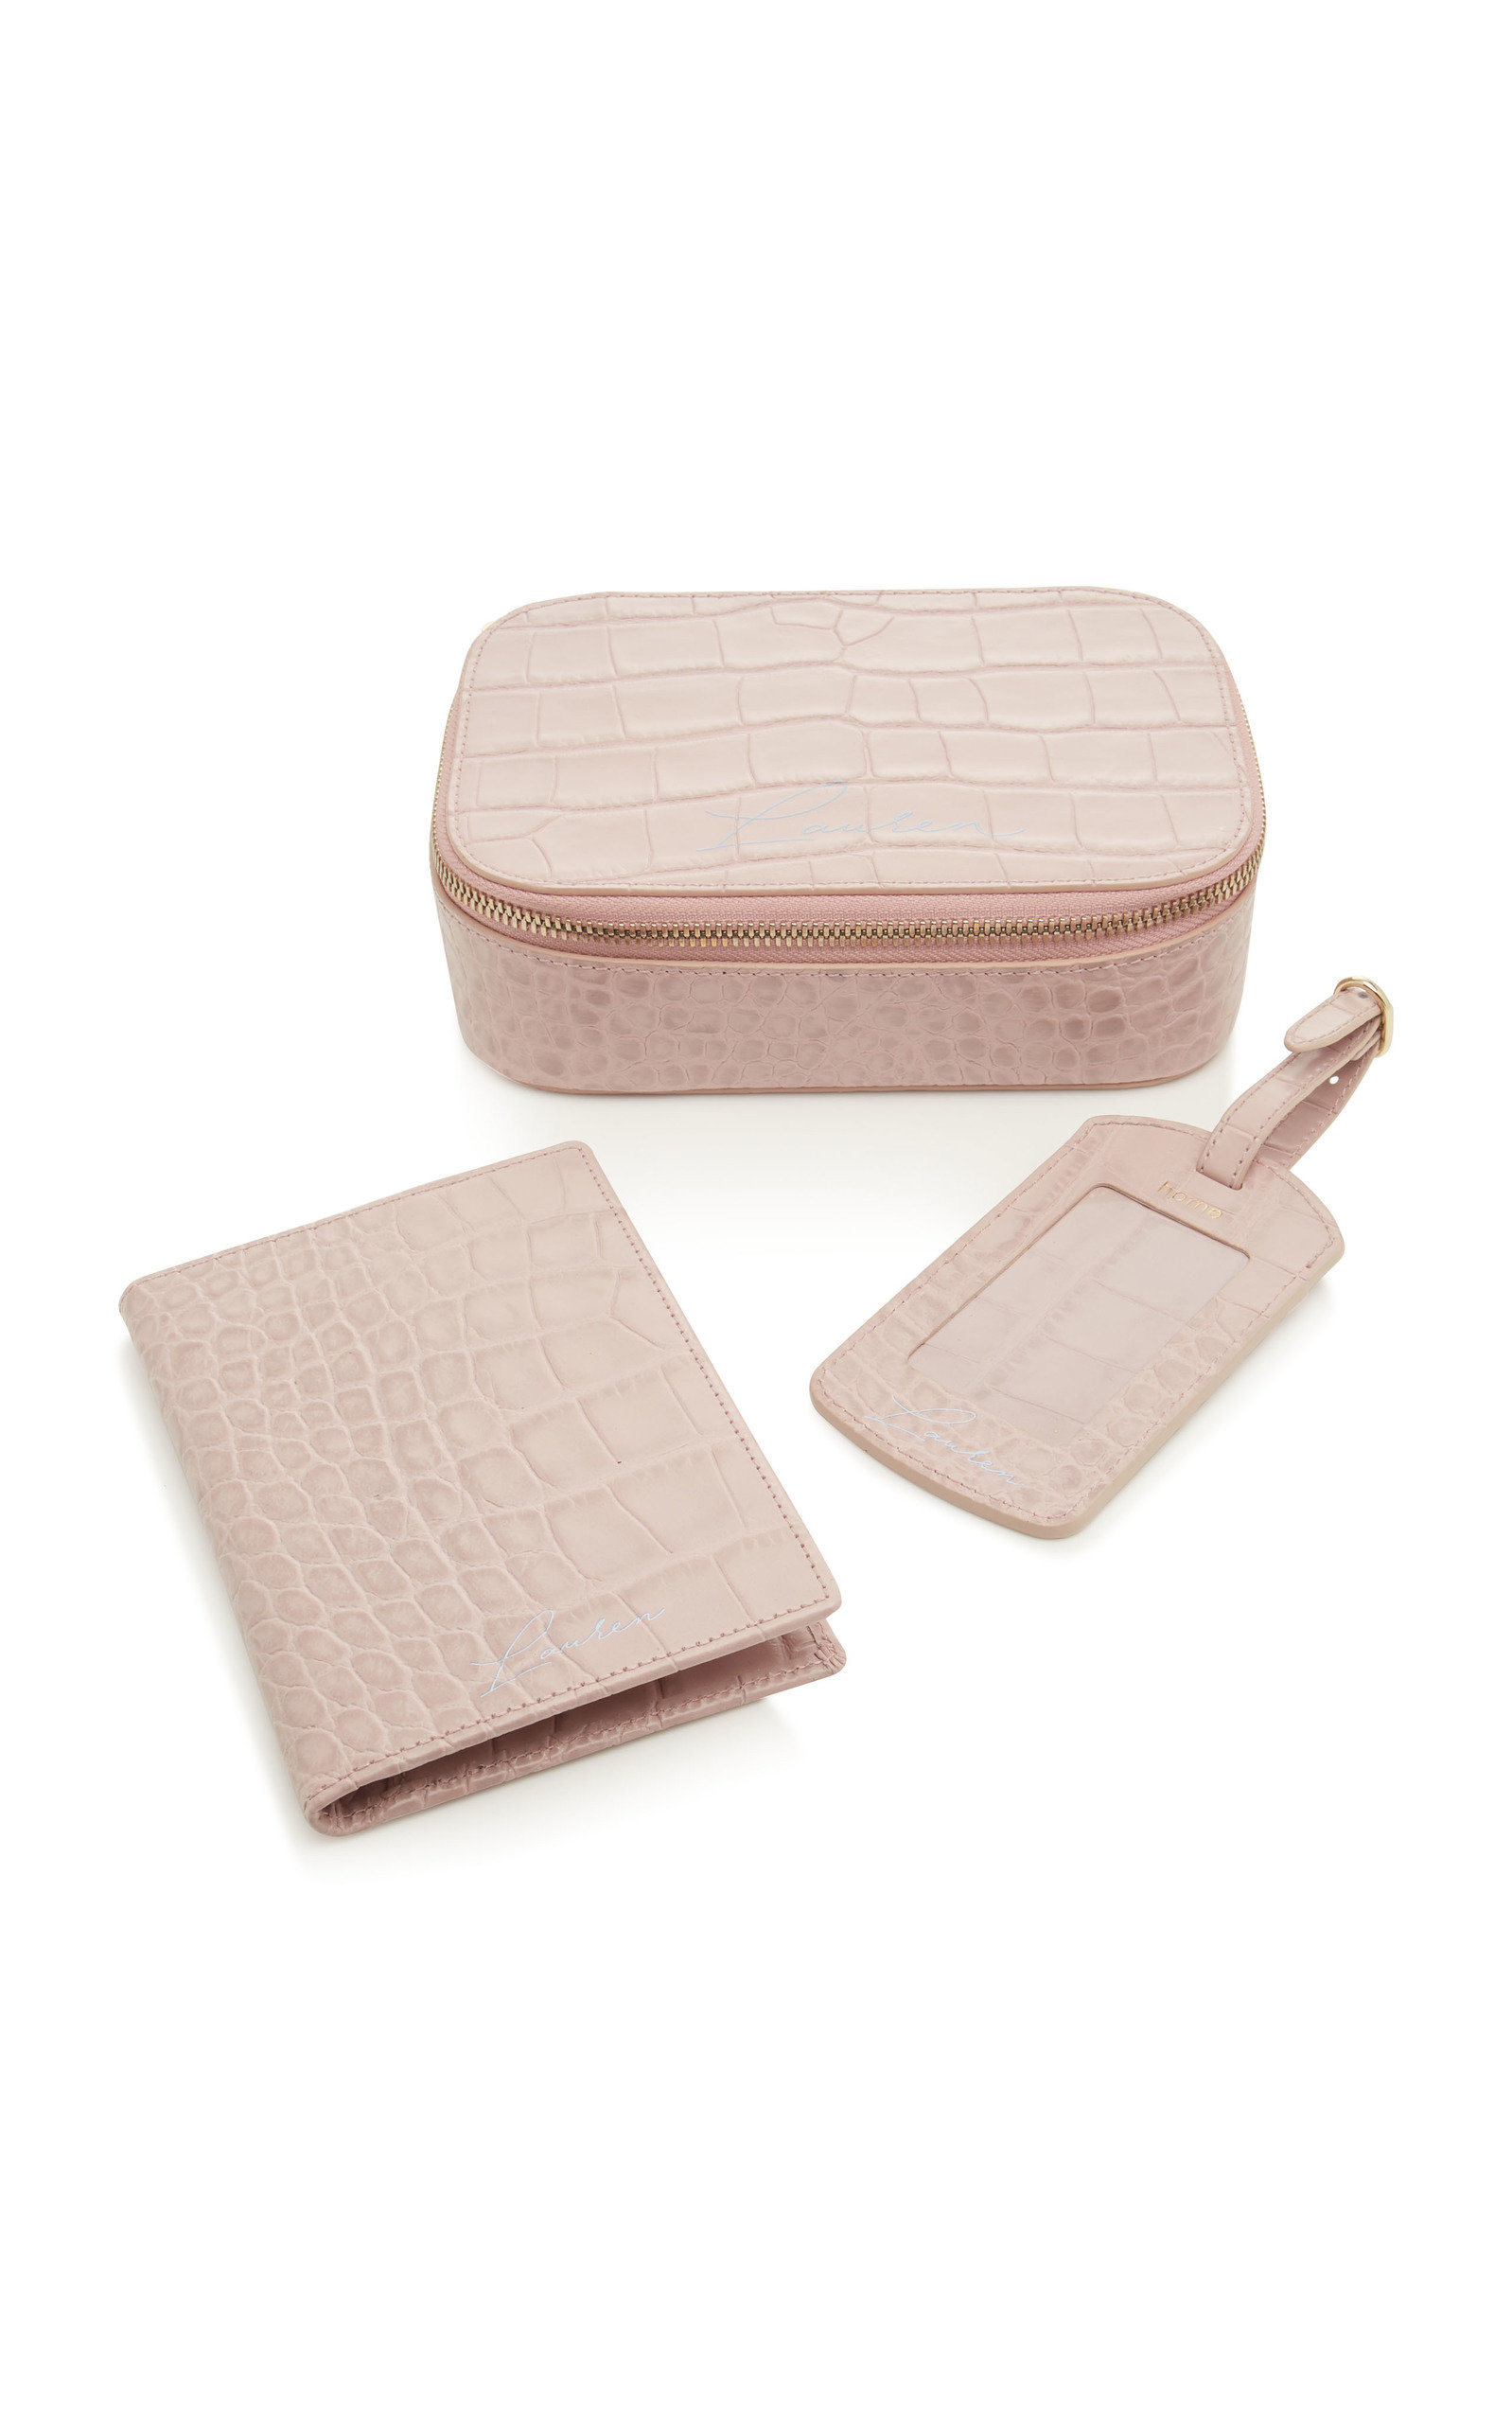 M'ONOGRAMMABLE 3 PIECE TRAVEL SET IN PINK CROCO